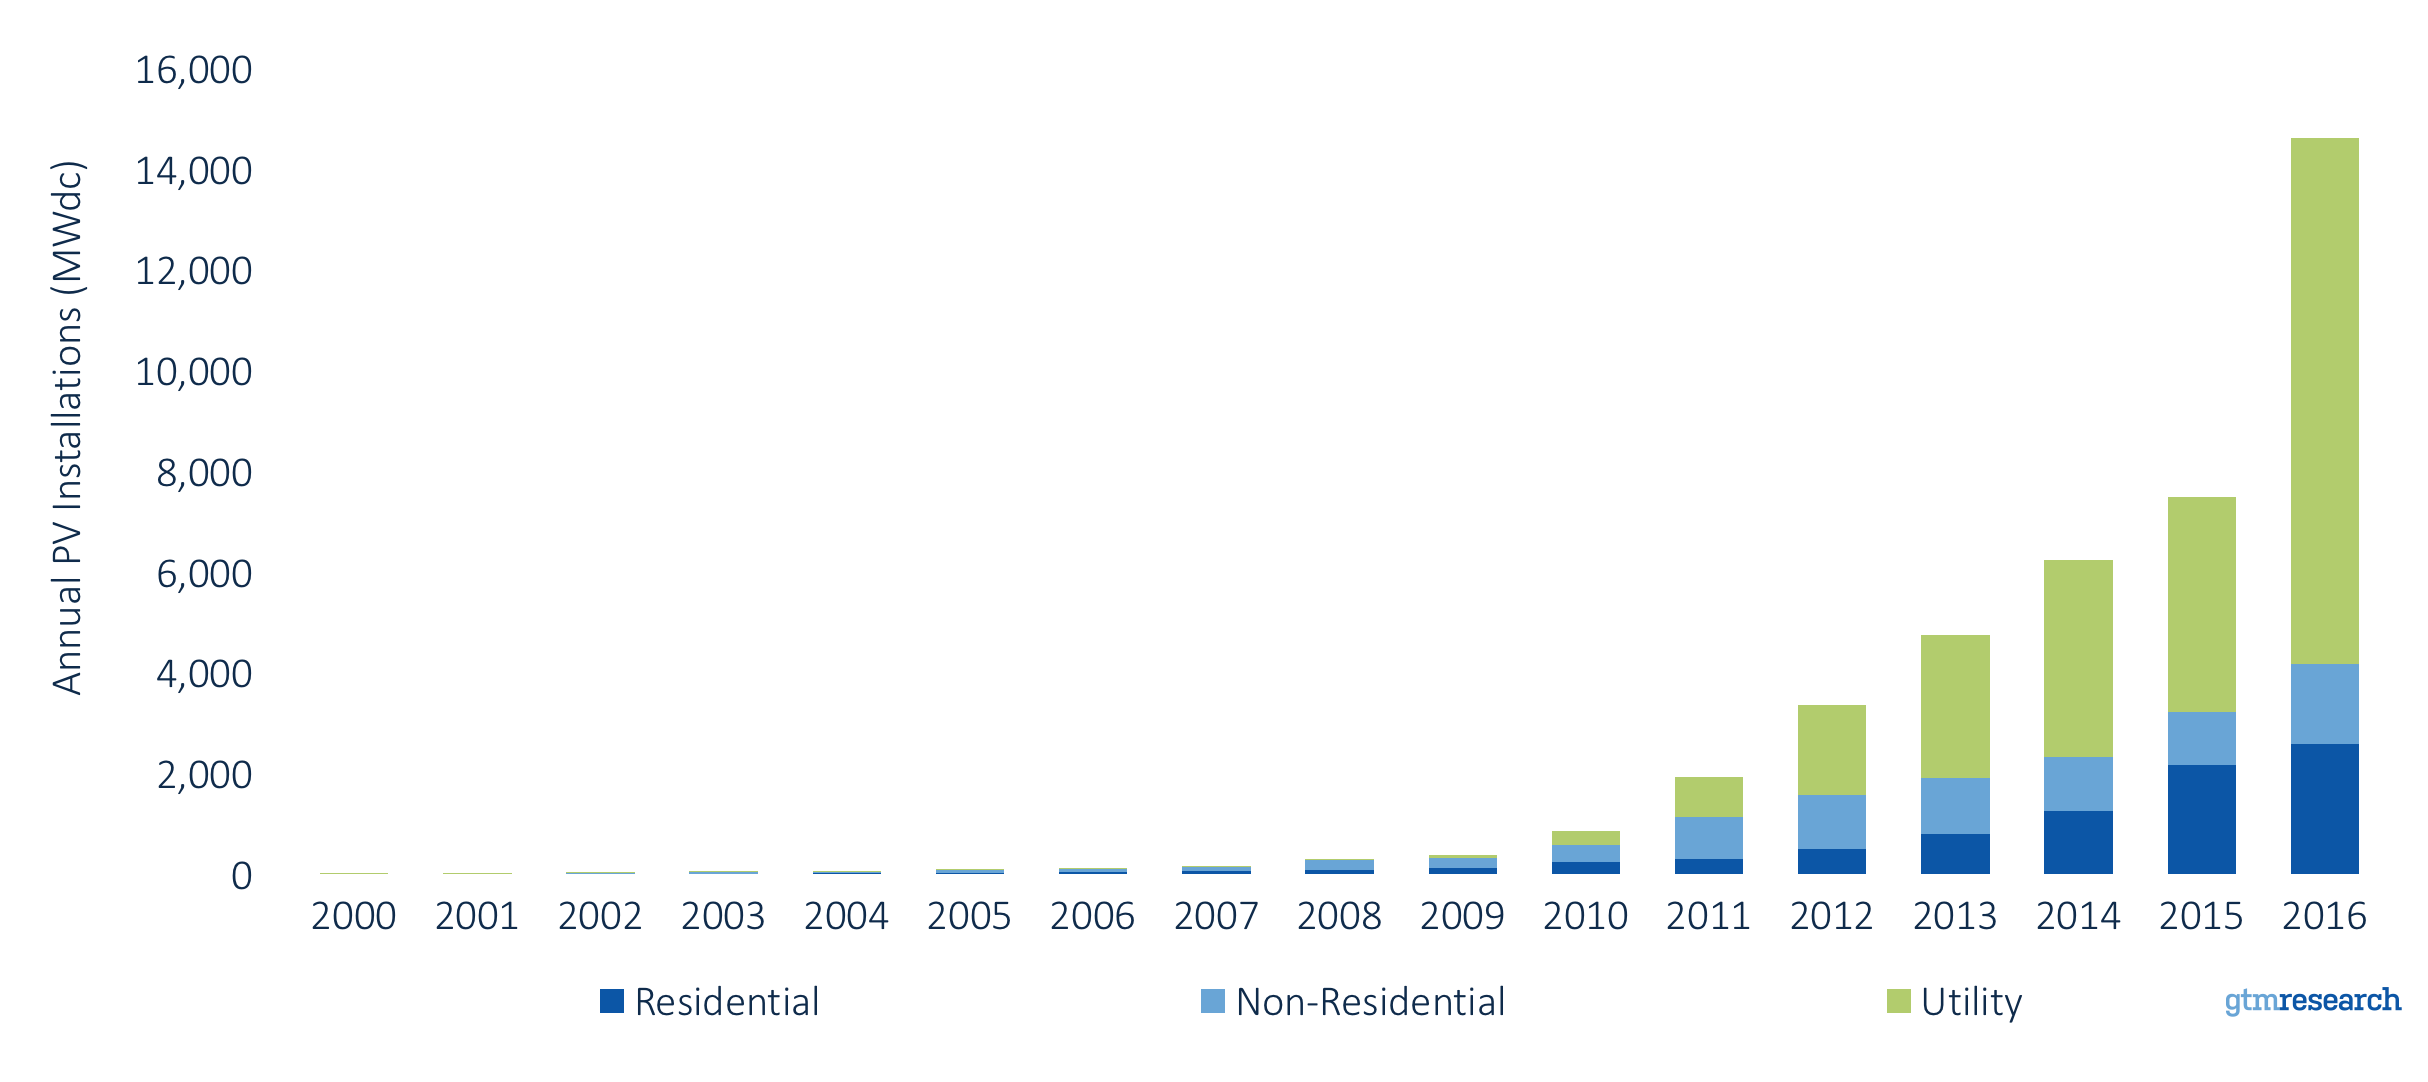 Source:  GTM Research/SEIA U.S. Solar Market Insight dataset